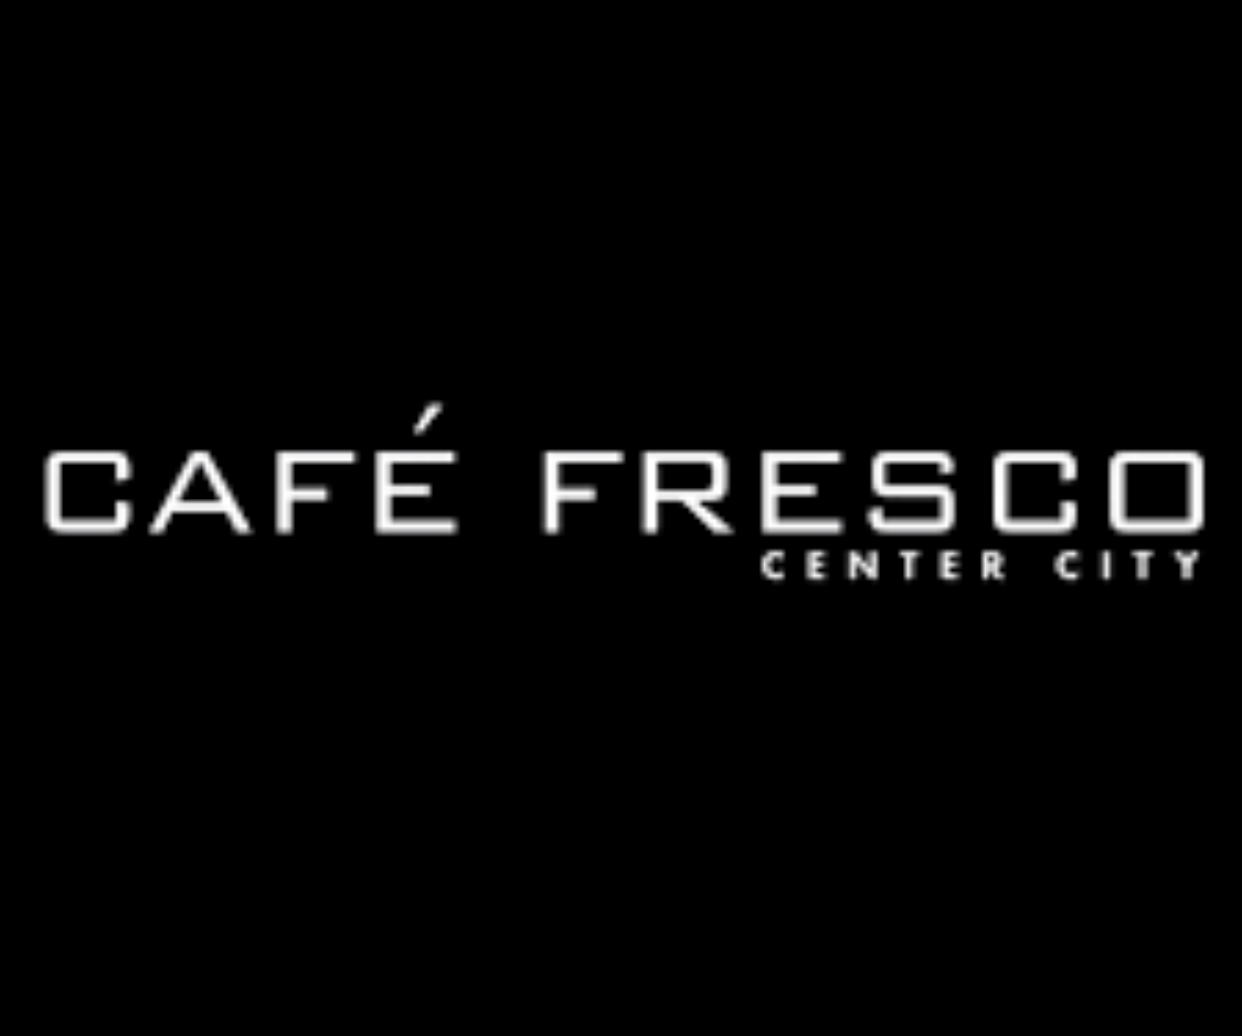 Cafe Fresco Center City  logo